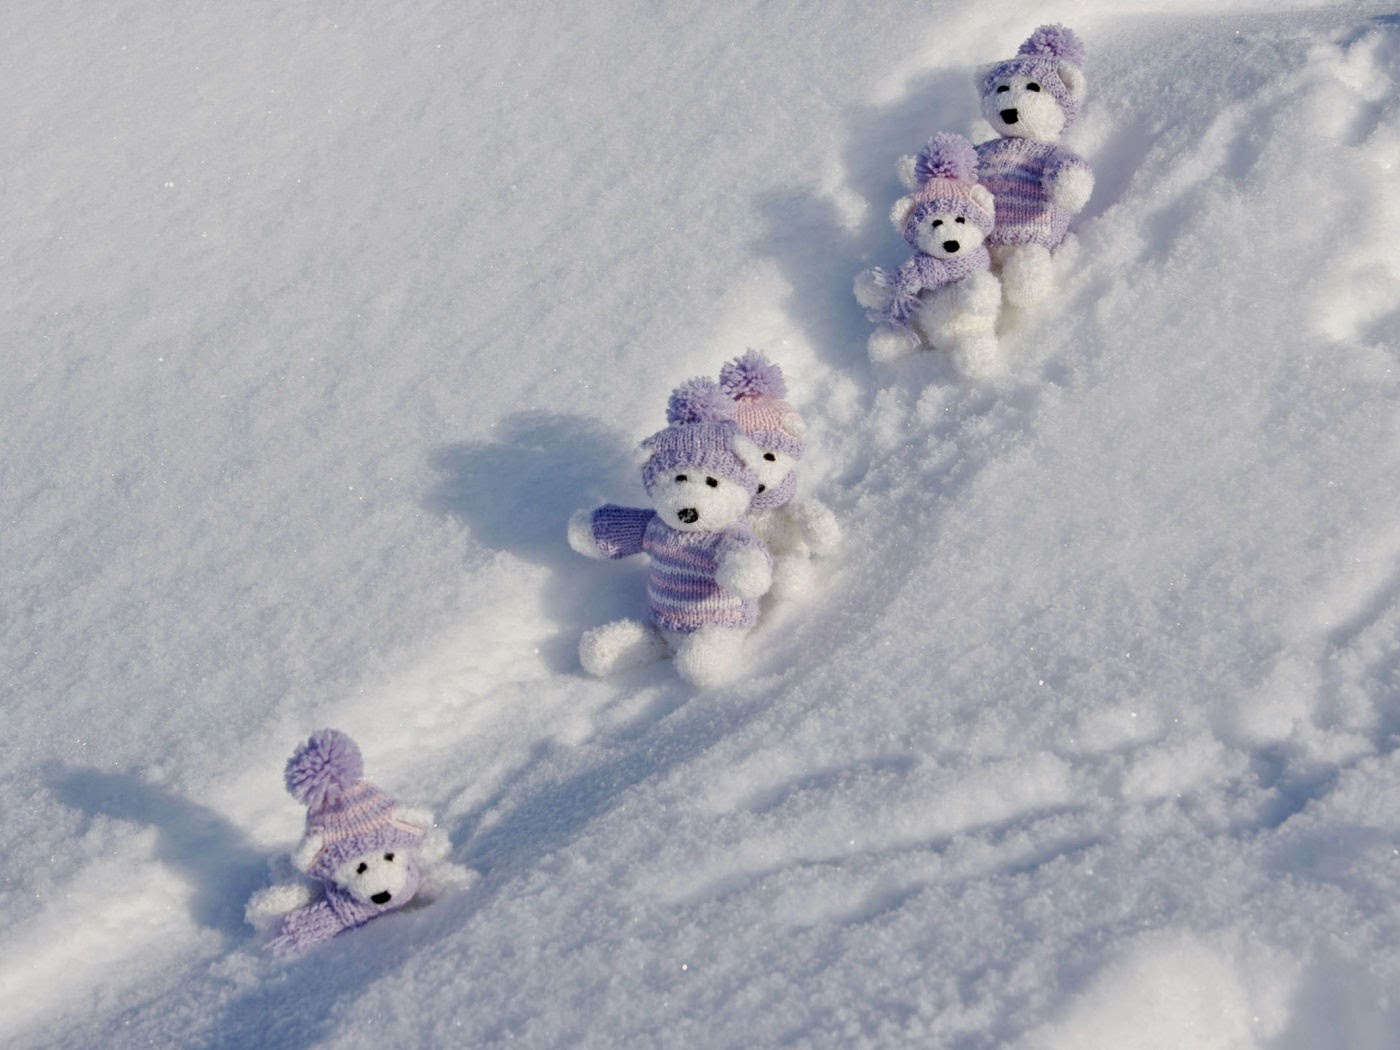 Teddy-bear-winter-playing-in-snow-image-1400x1050.jpg